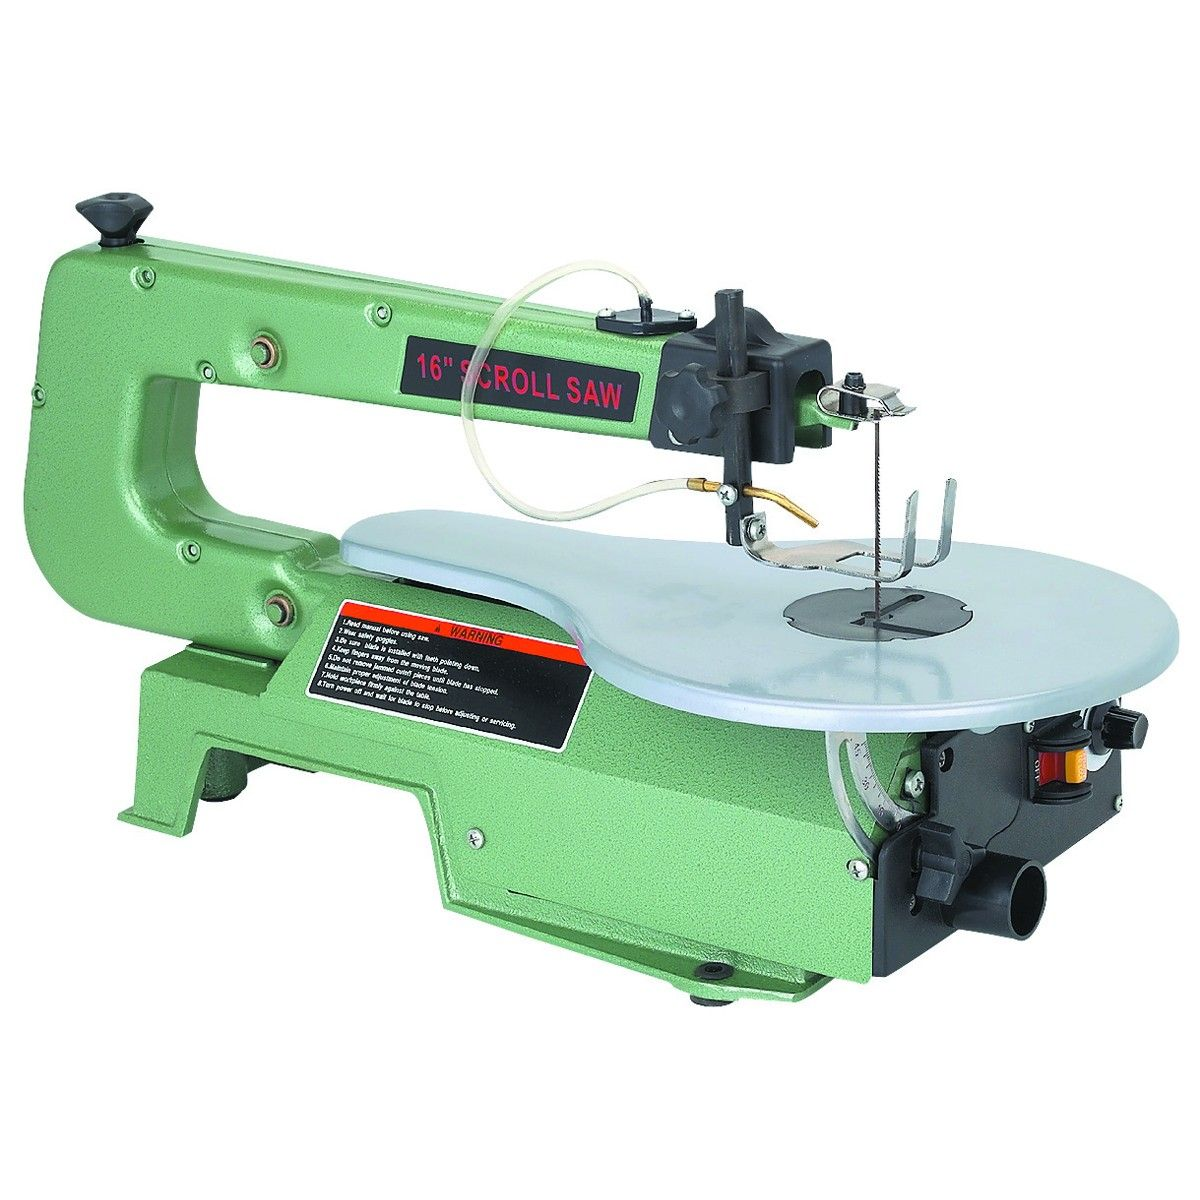 Central machinery 93012 16 variable speed scroll saw jewelers variable speed scroll saw 60 hz single phase includes blade two blade adapters hex keys cast iron base for less vibration cuts wood up to thick greentooth Image collections